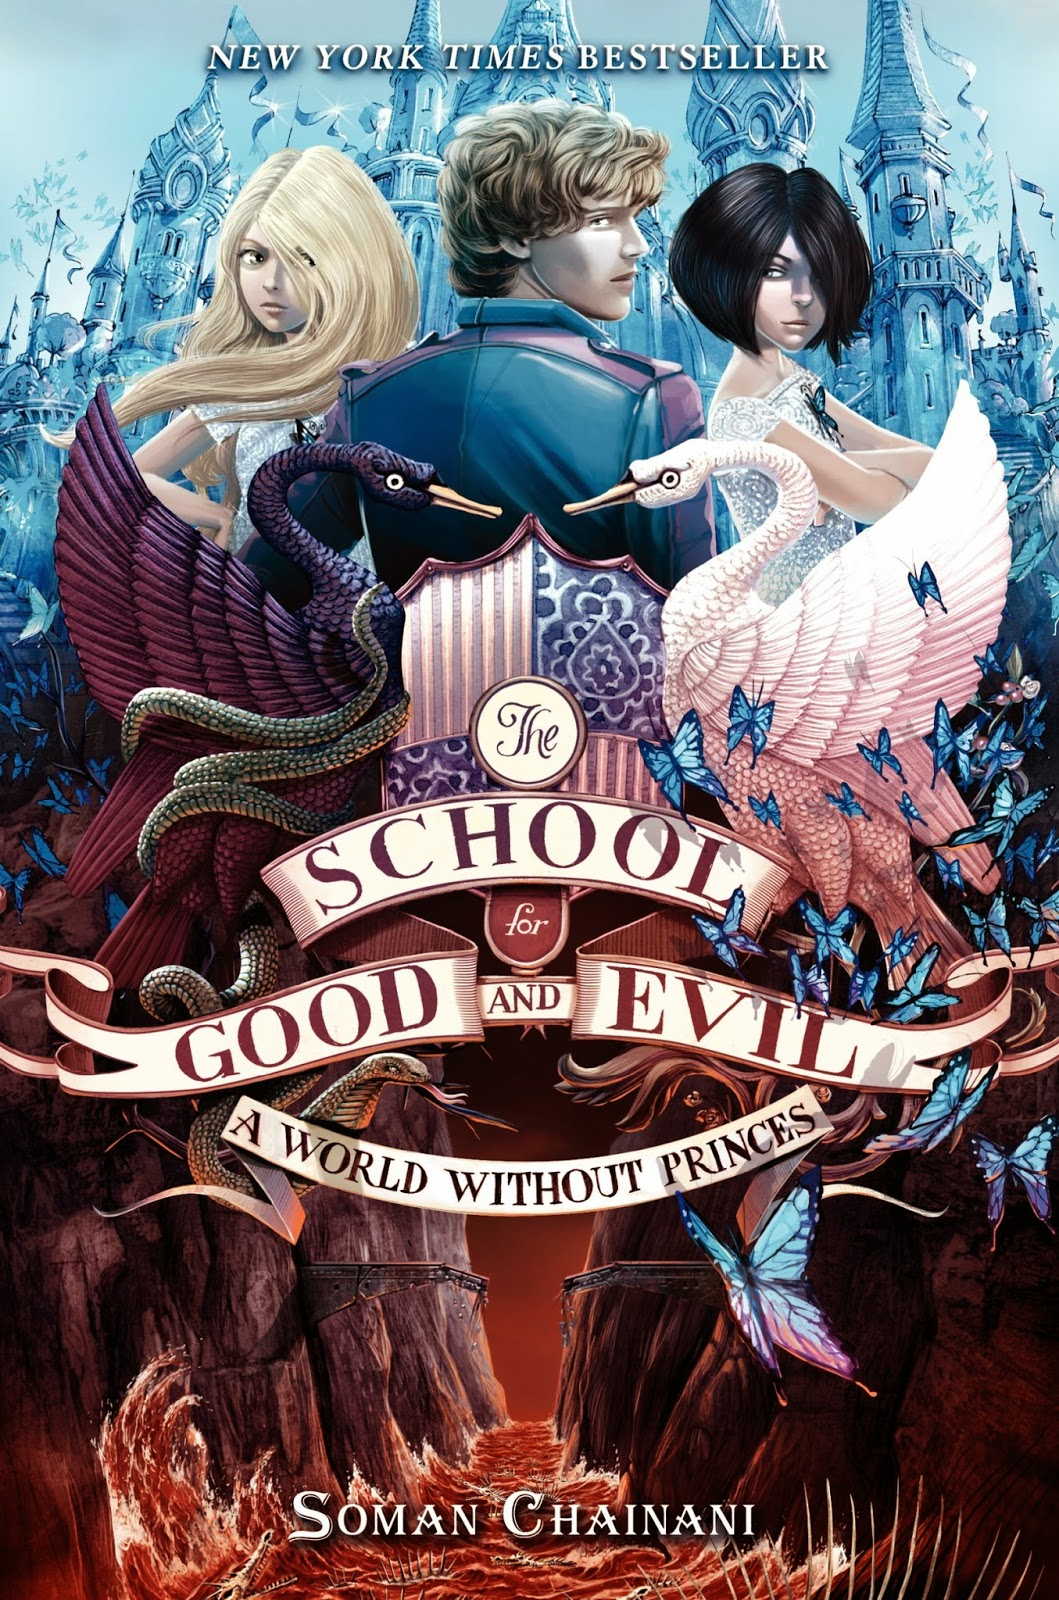 The School For Good And Evil #2: A World Without Princes (book 2 Out Of 3)